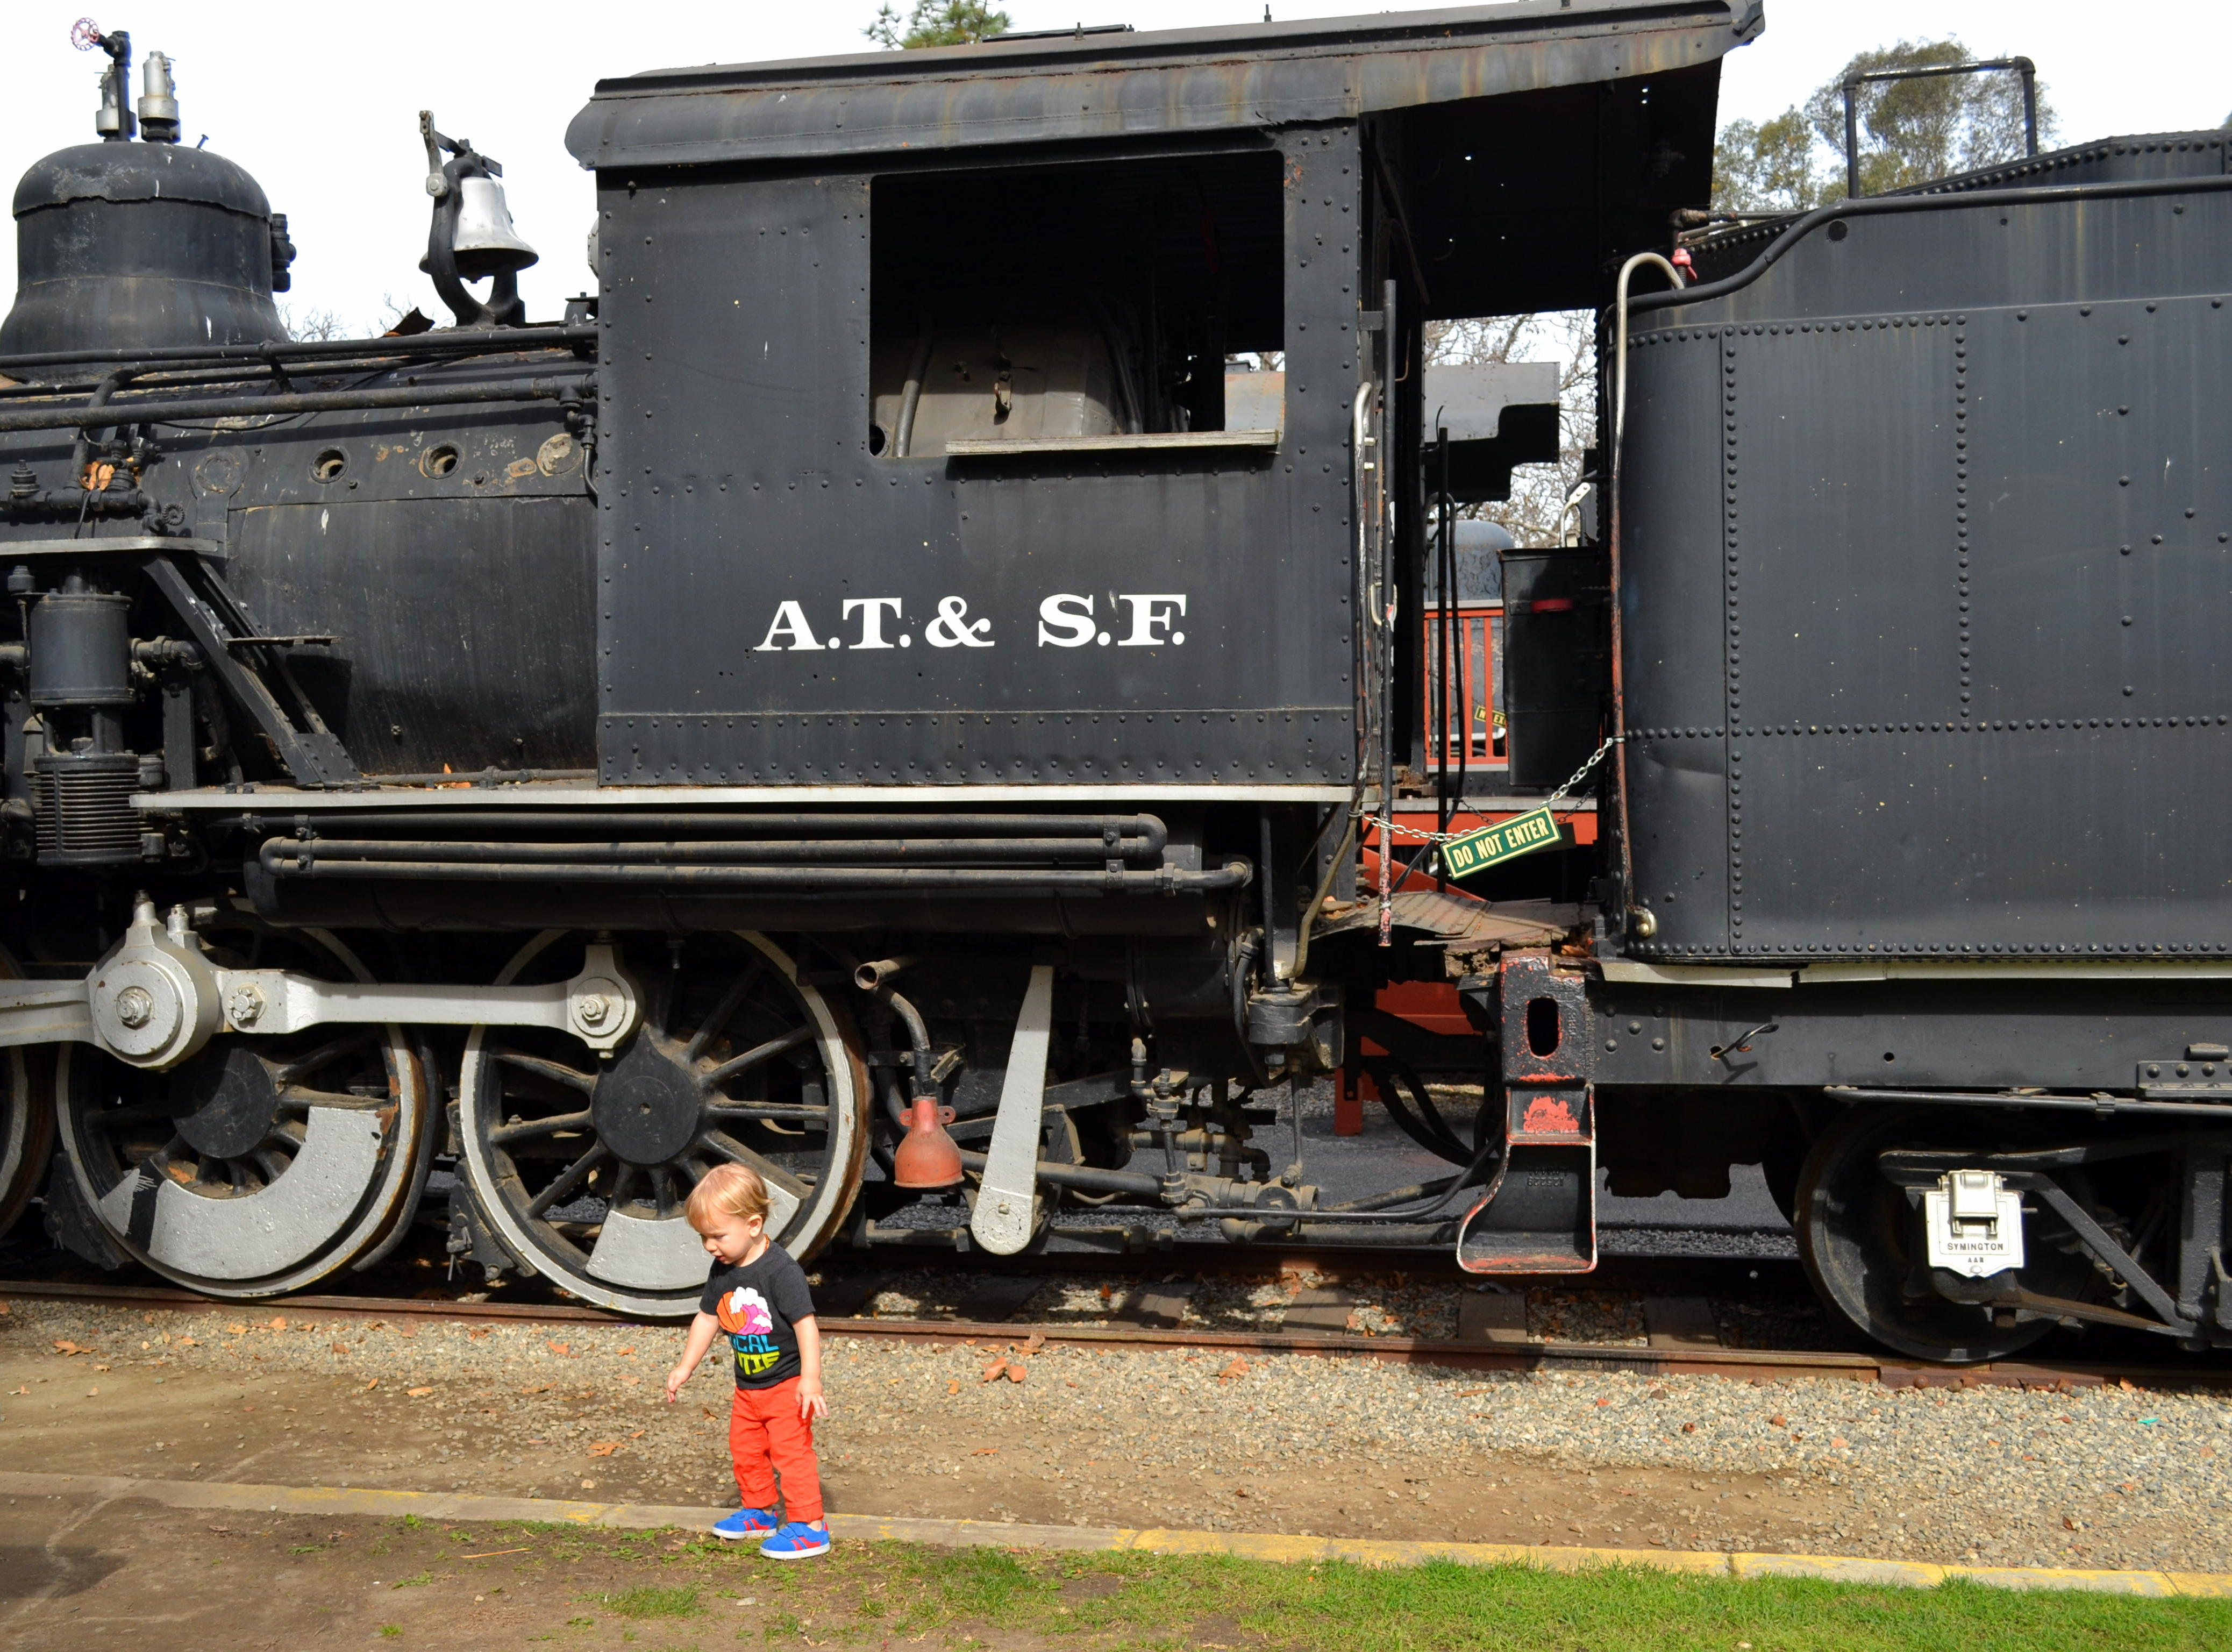 We saw some very old trains at Travel Town in Griffith Park...